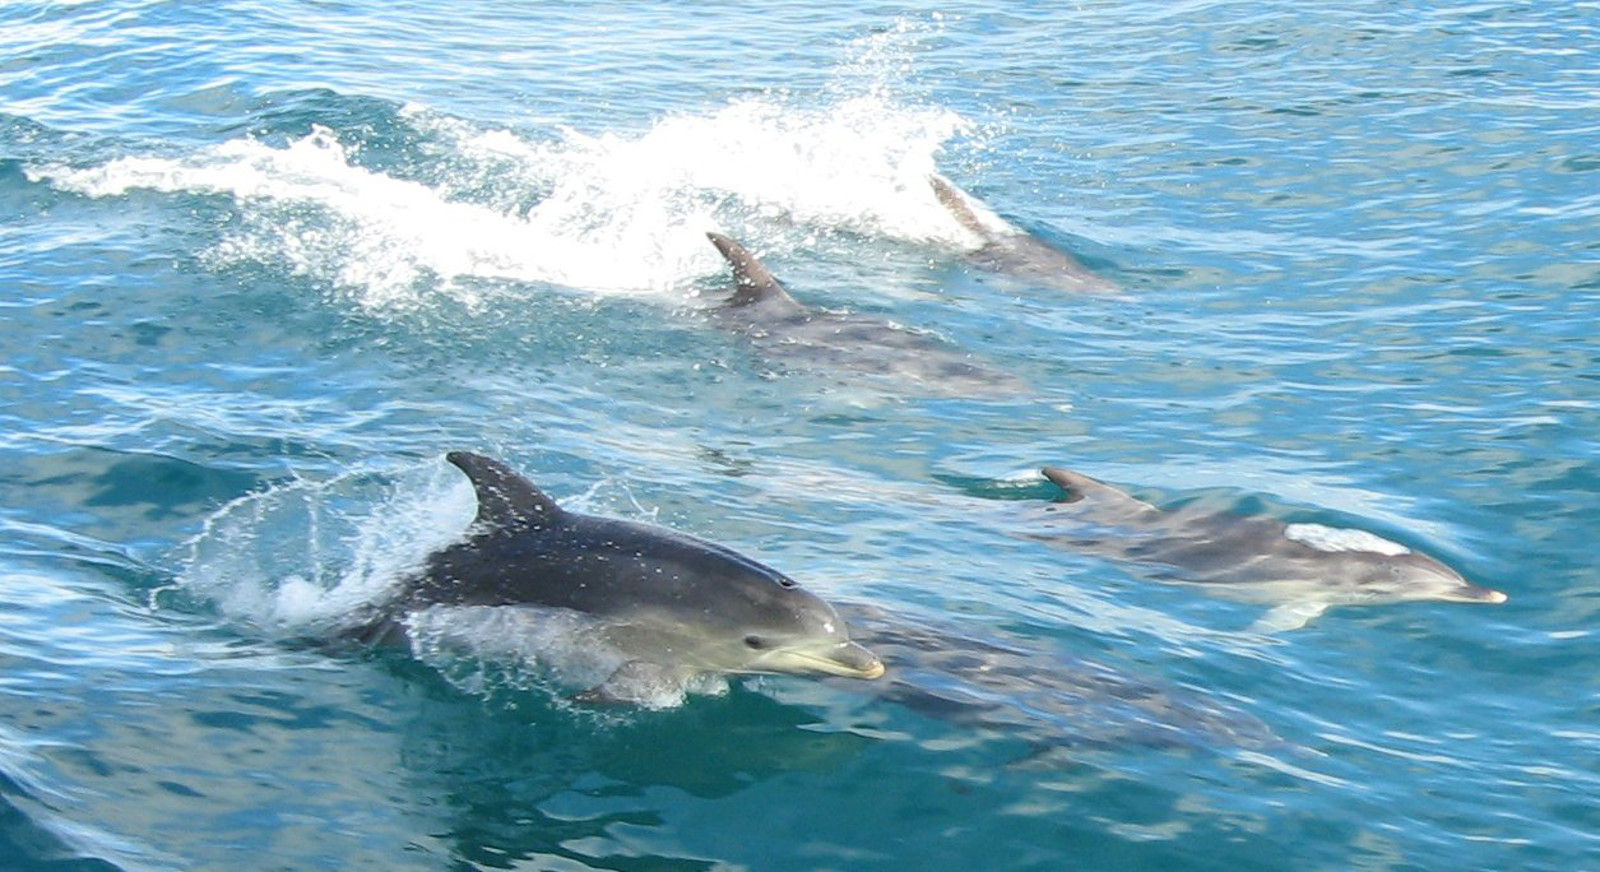 The Truth Behind Japanese Whale and Dolphin Hunts